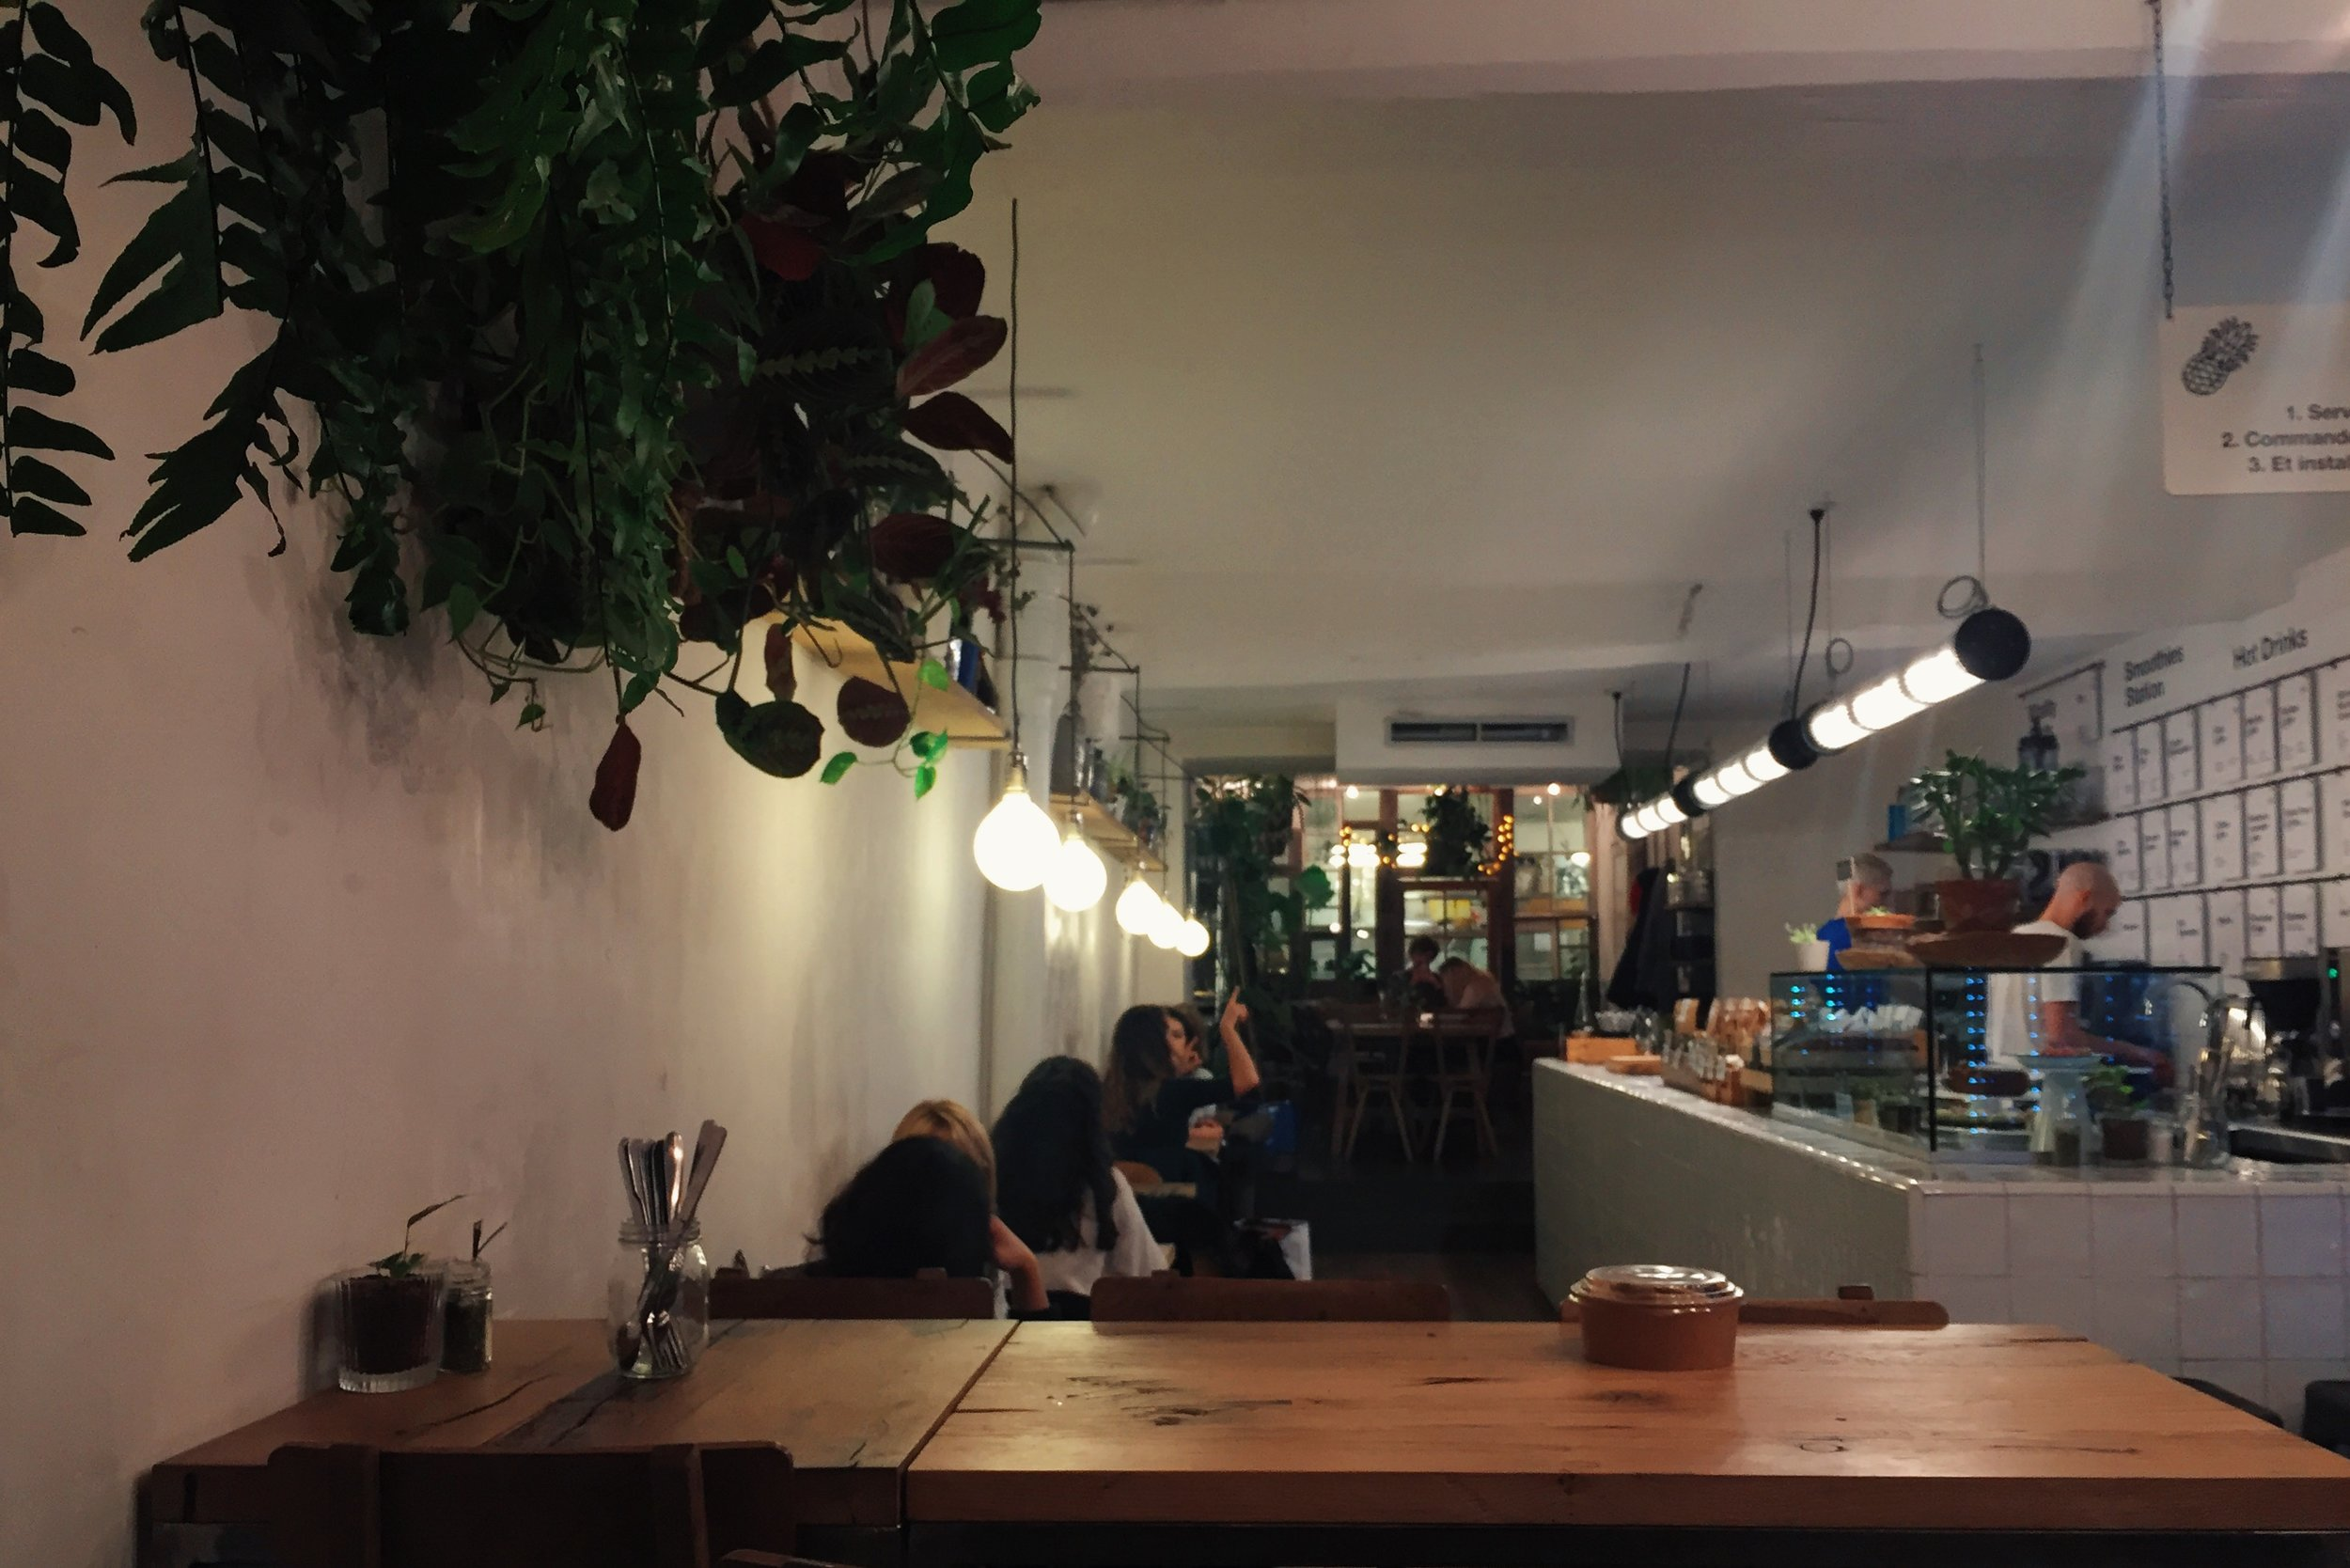 Visiting Paris? - Between all the wine and cheese, try one of these healthy conscious cafés before you say au revoir.